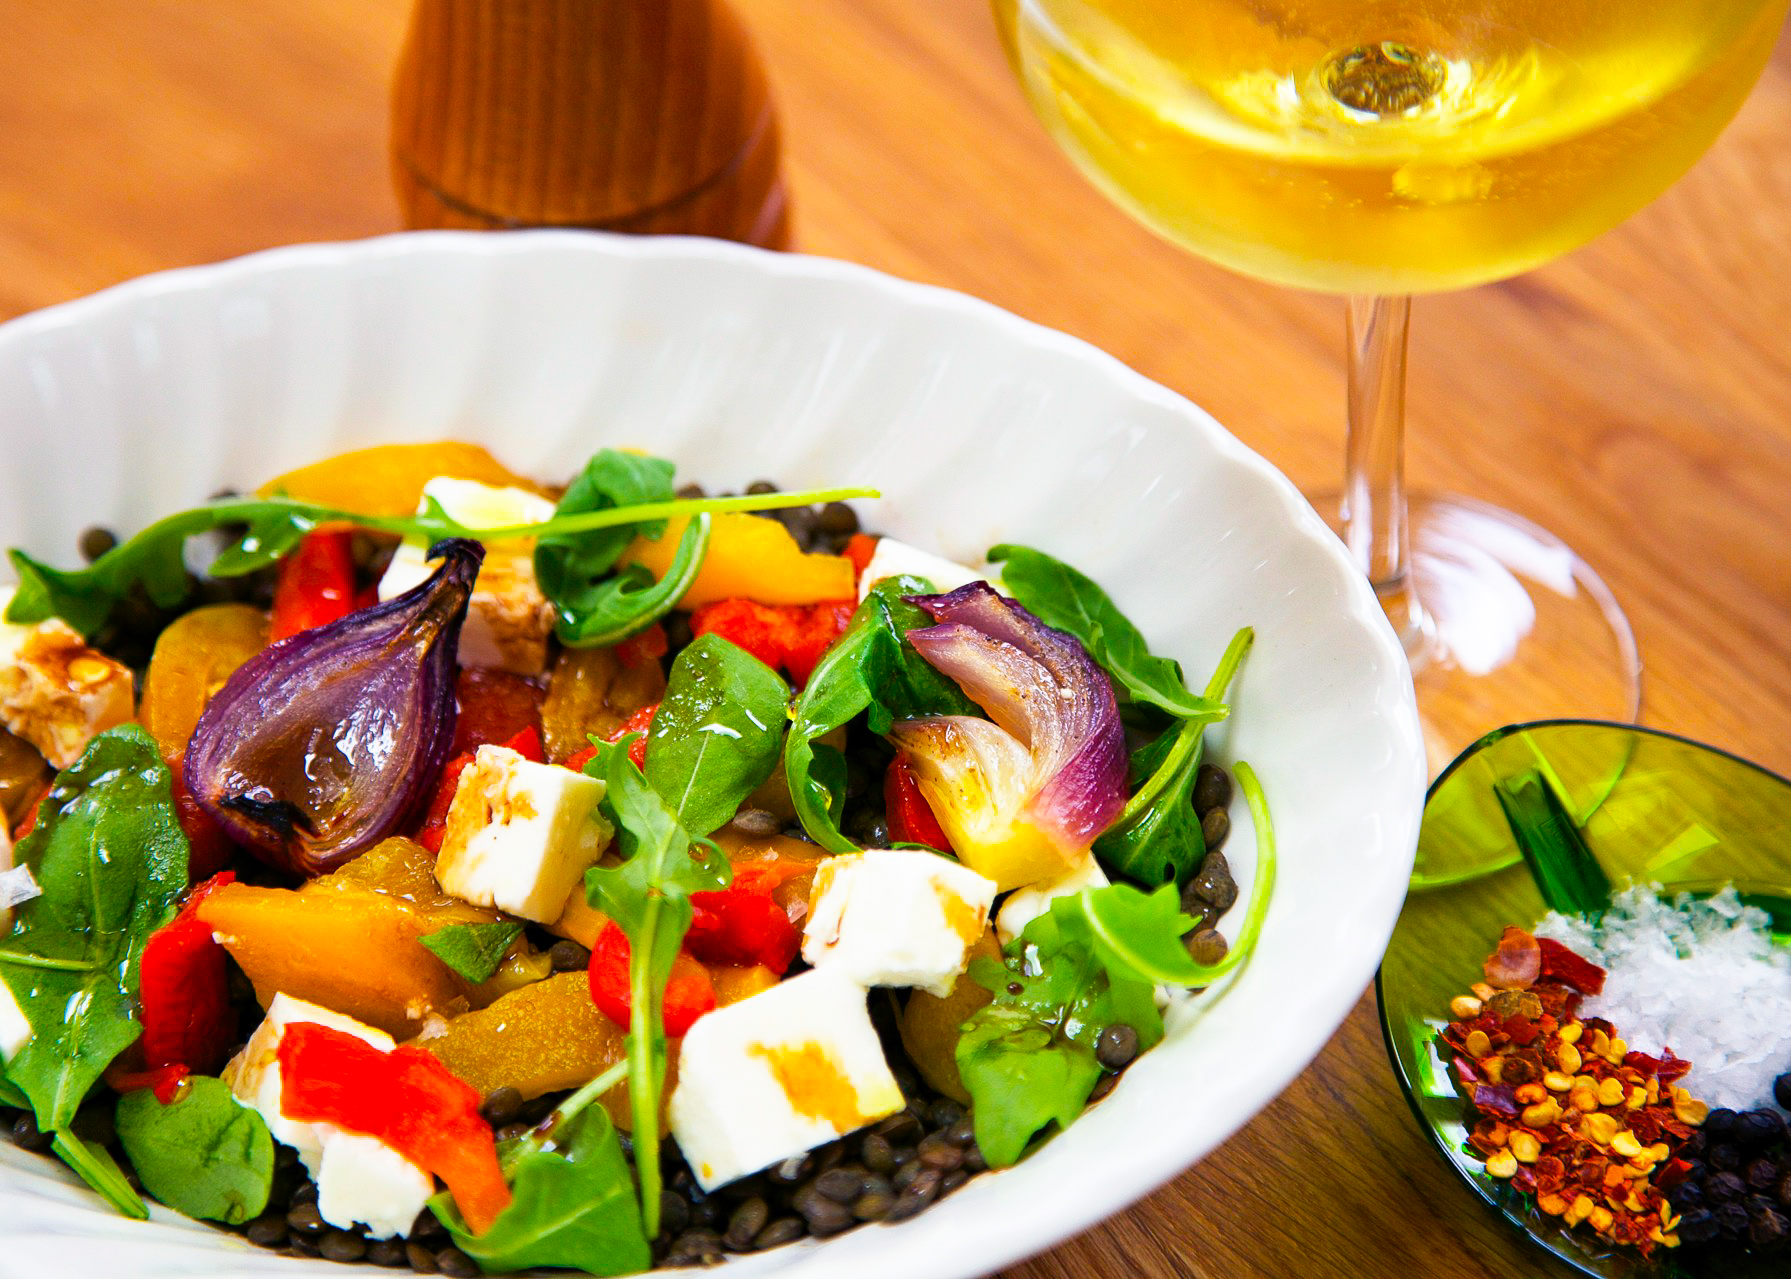 Warm Salad of Lentils and Roasted Peppers